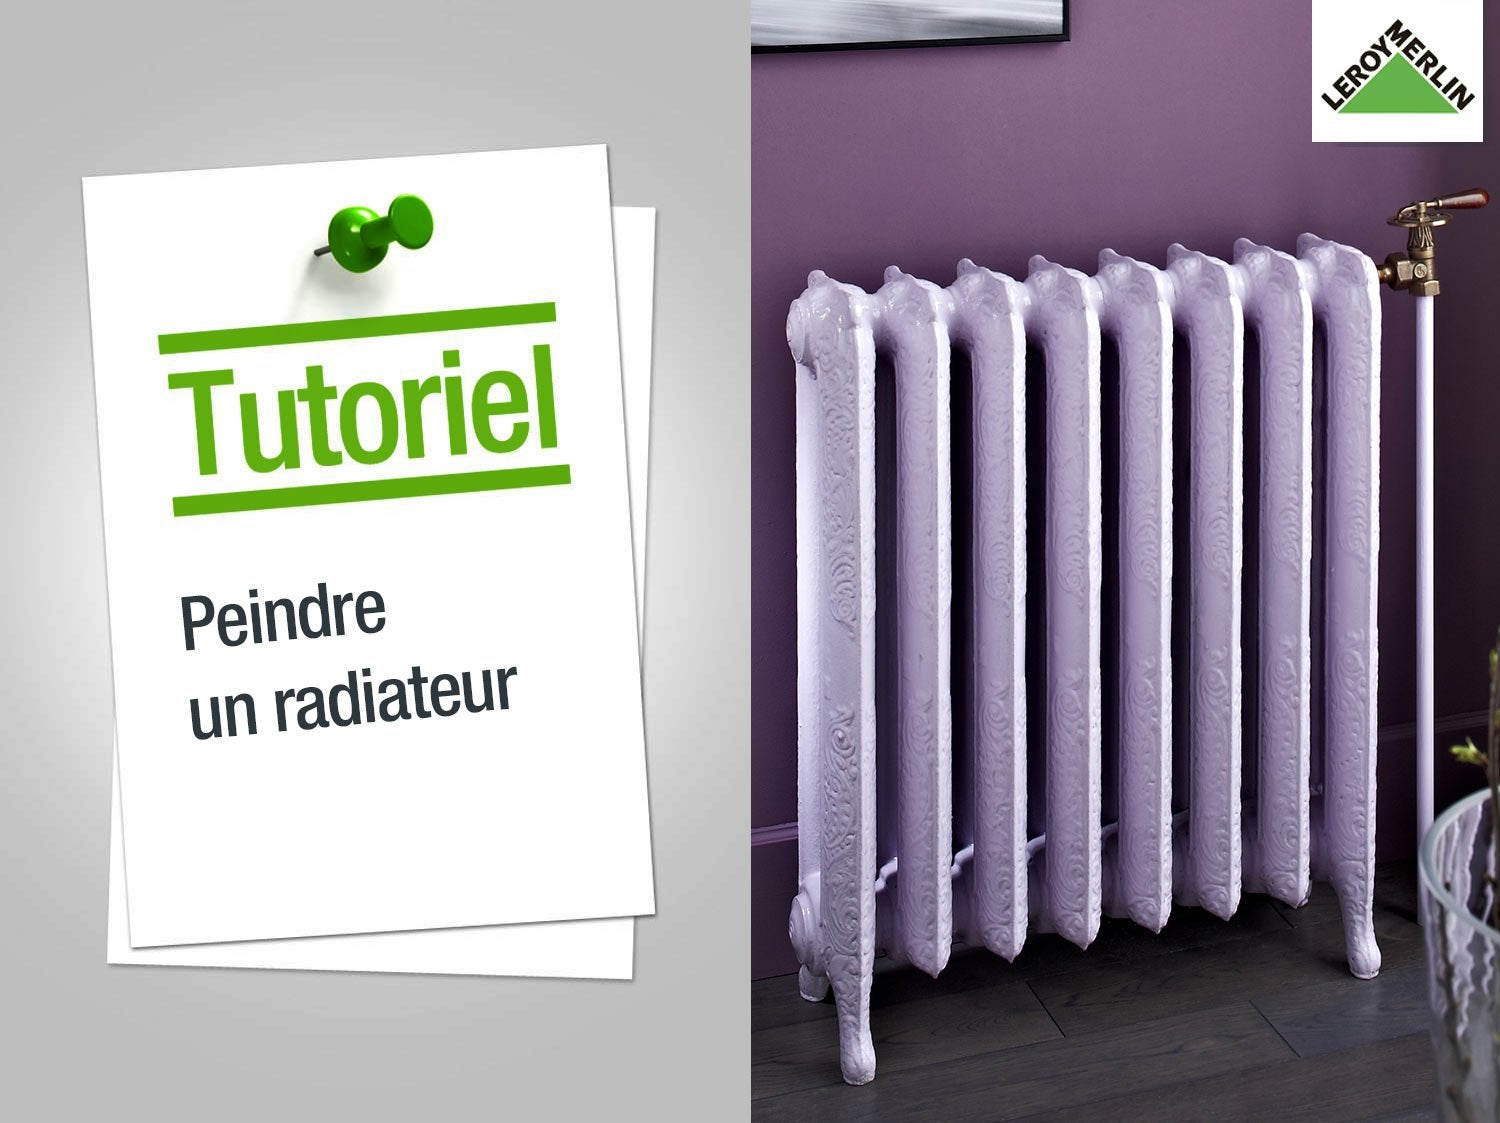 peinture radiateur electrique affordable fabrication europenne with peinture radiateur. Black Bedroom Furniture Sets. Home Design Ideas